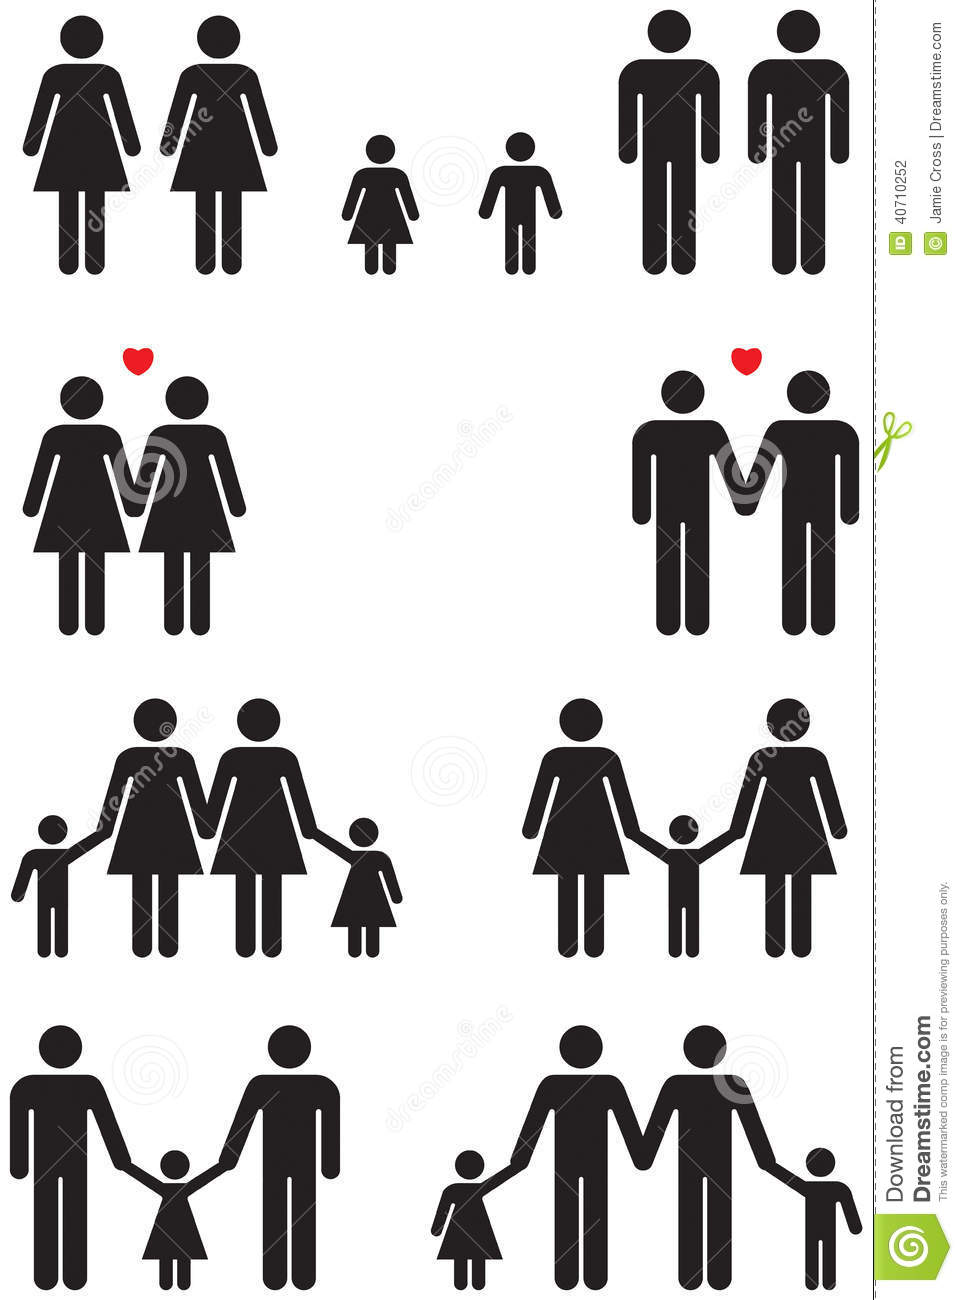 Image Result For Map Of Same Marriage